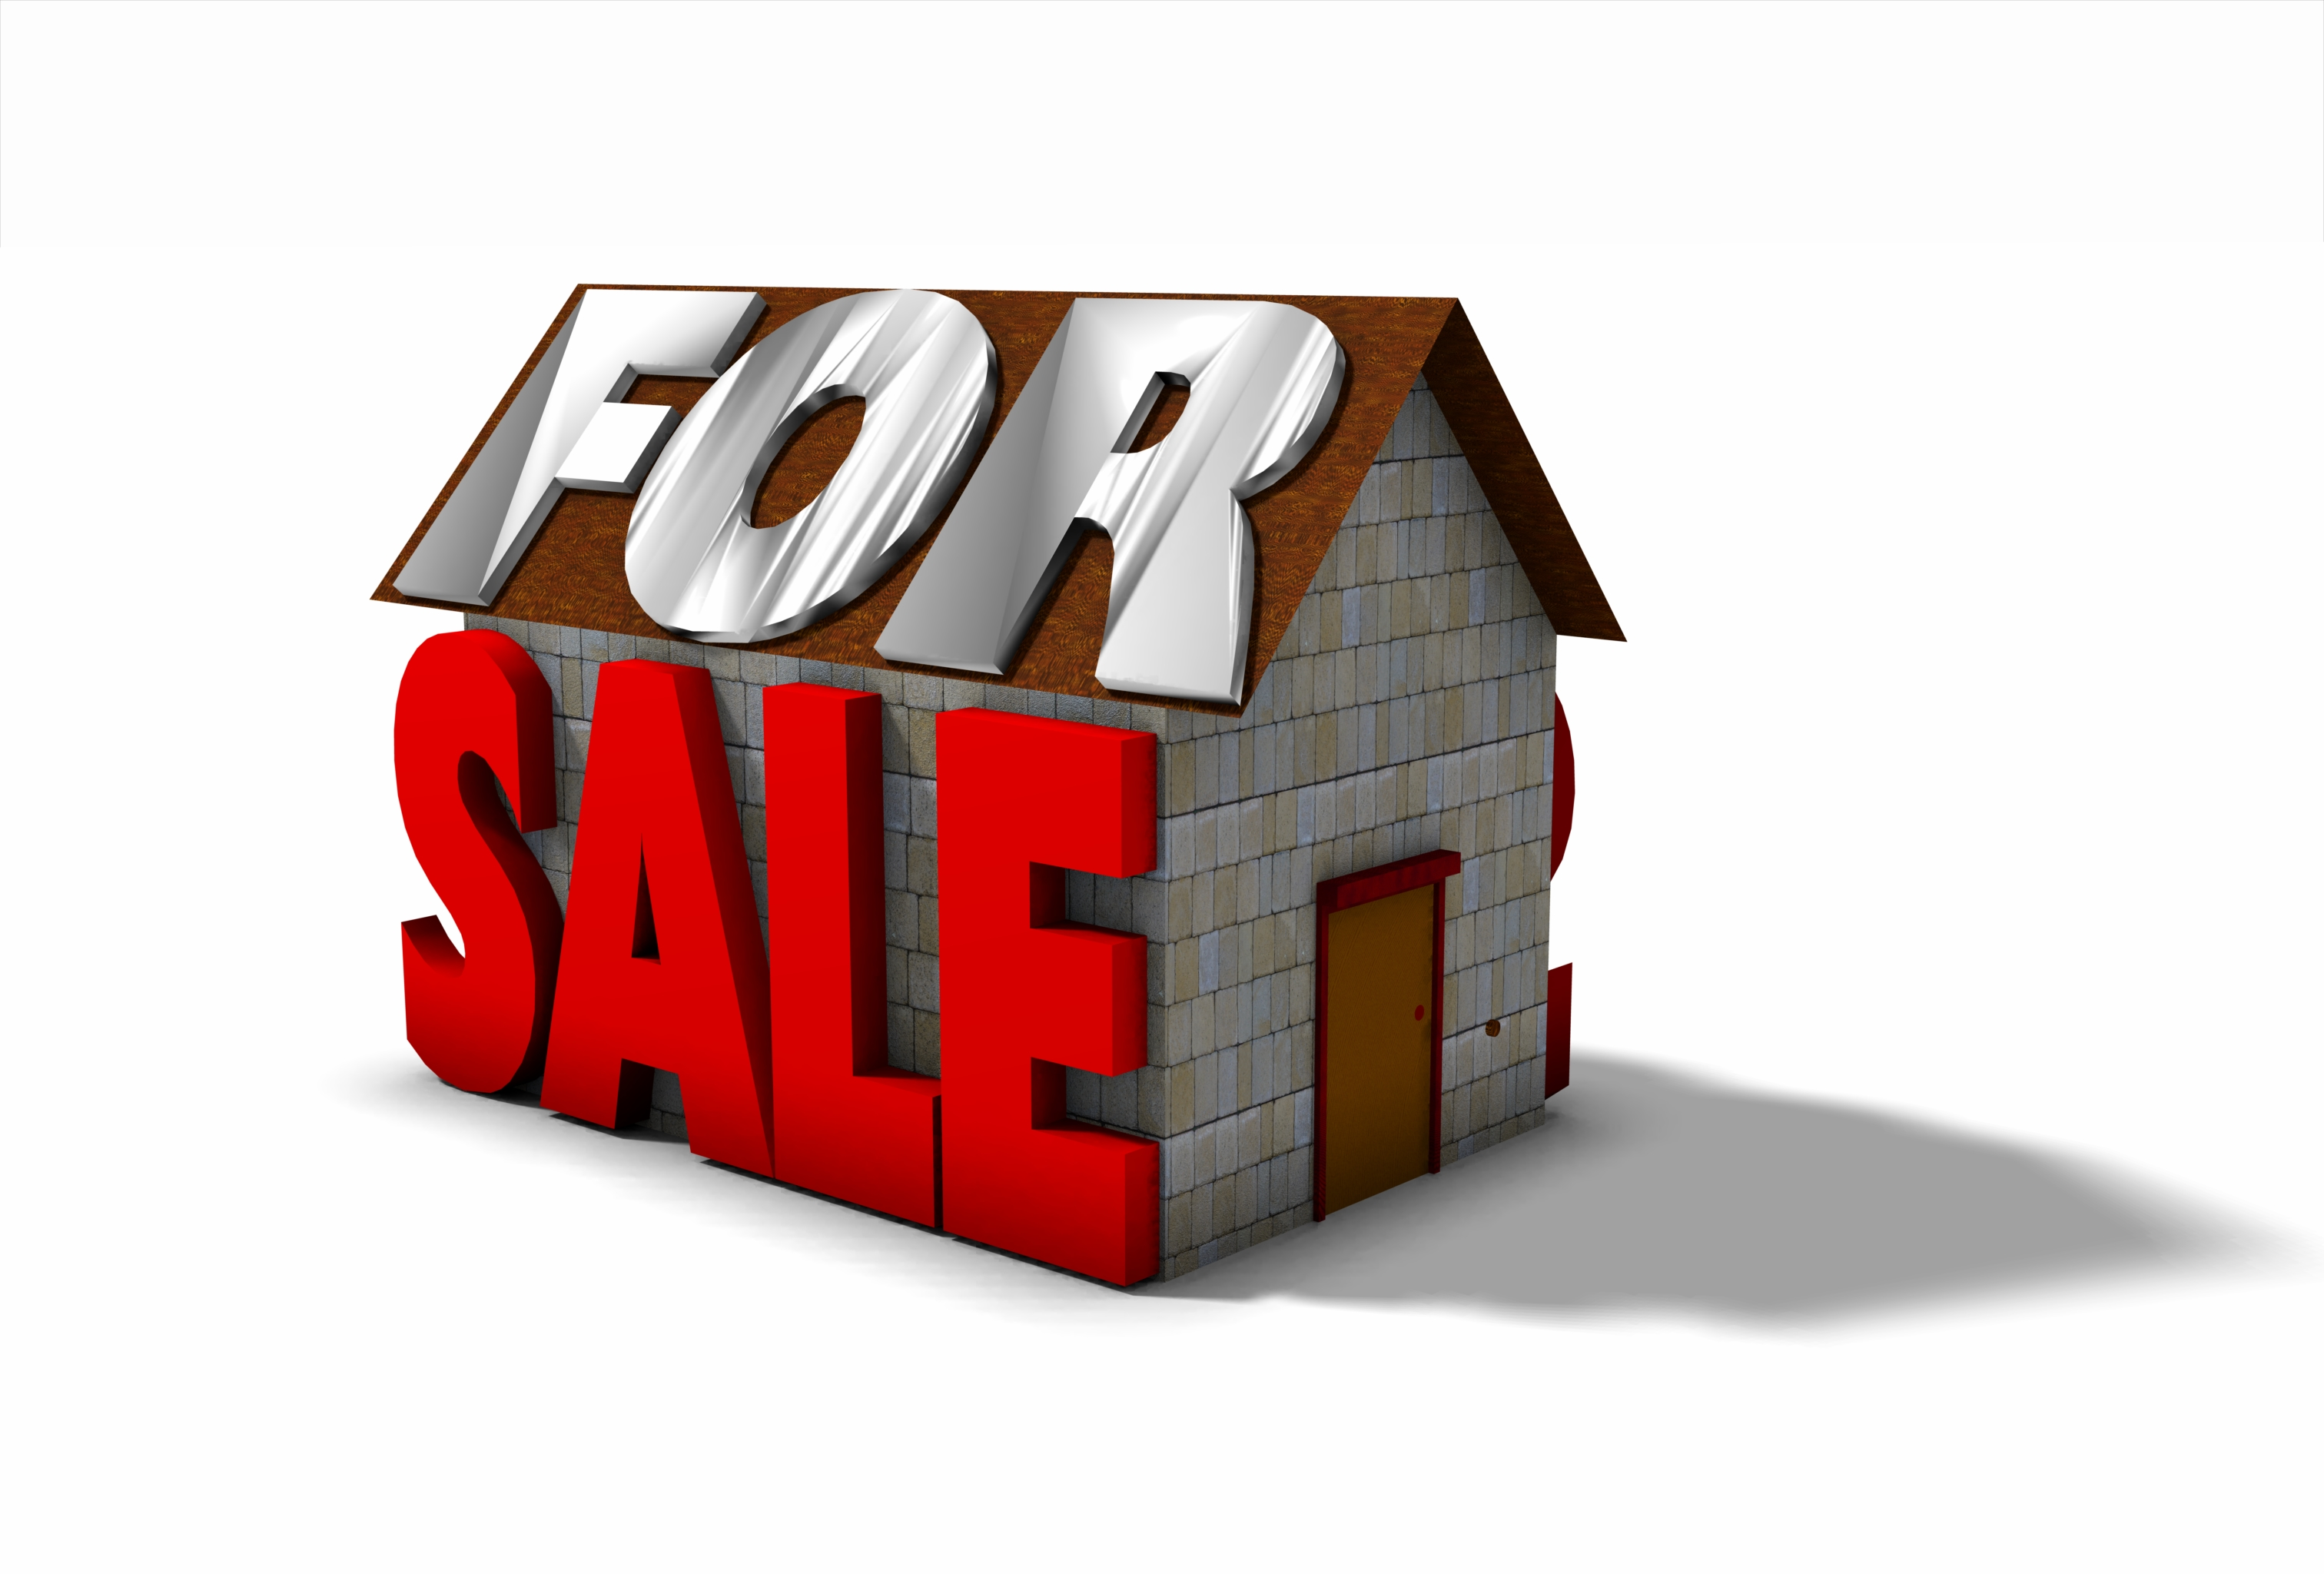 Sell my house in barrie the barrie real estate blog Buy house com